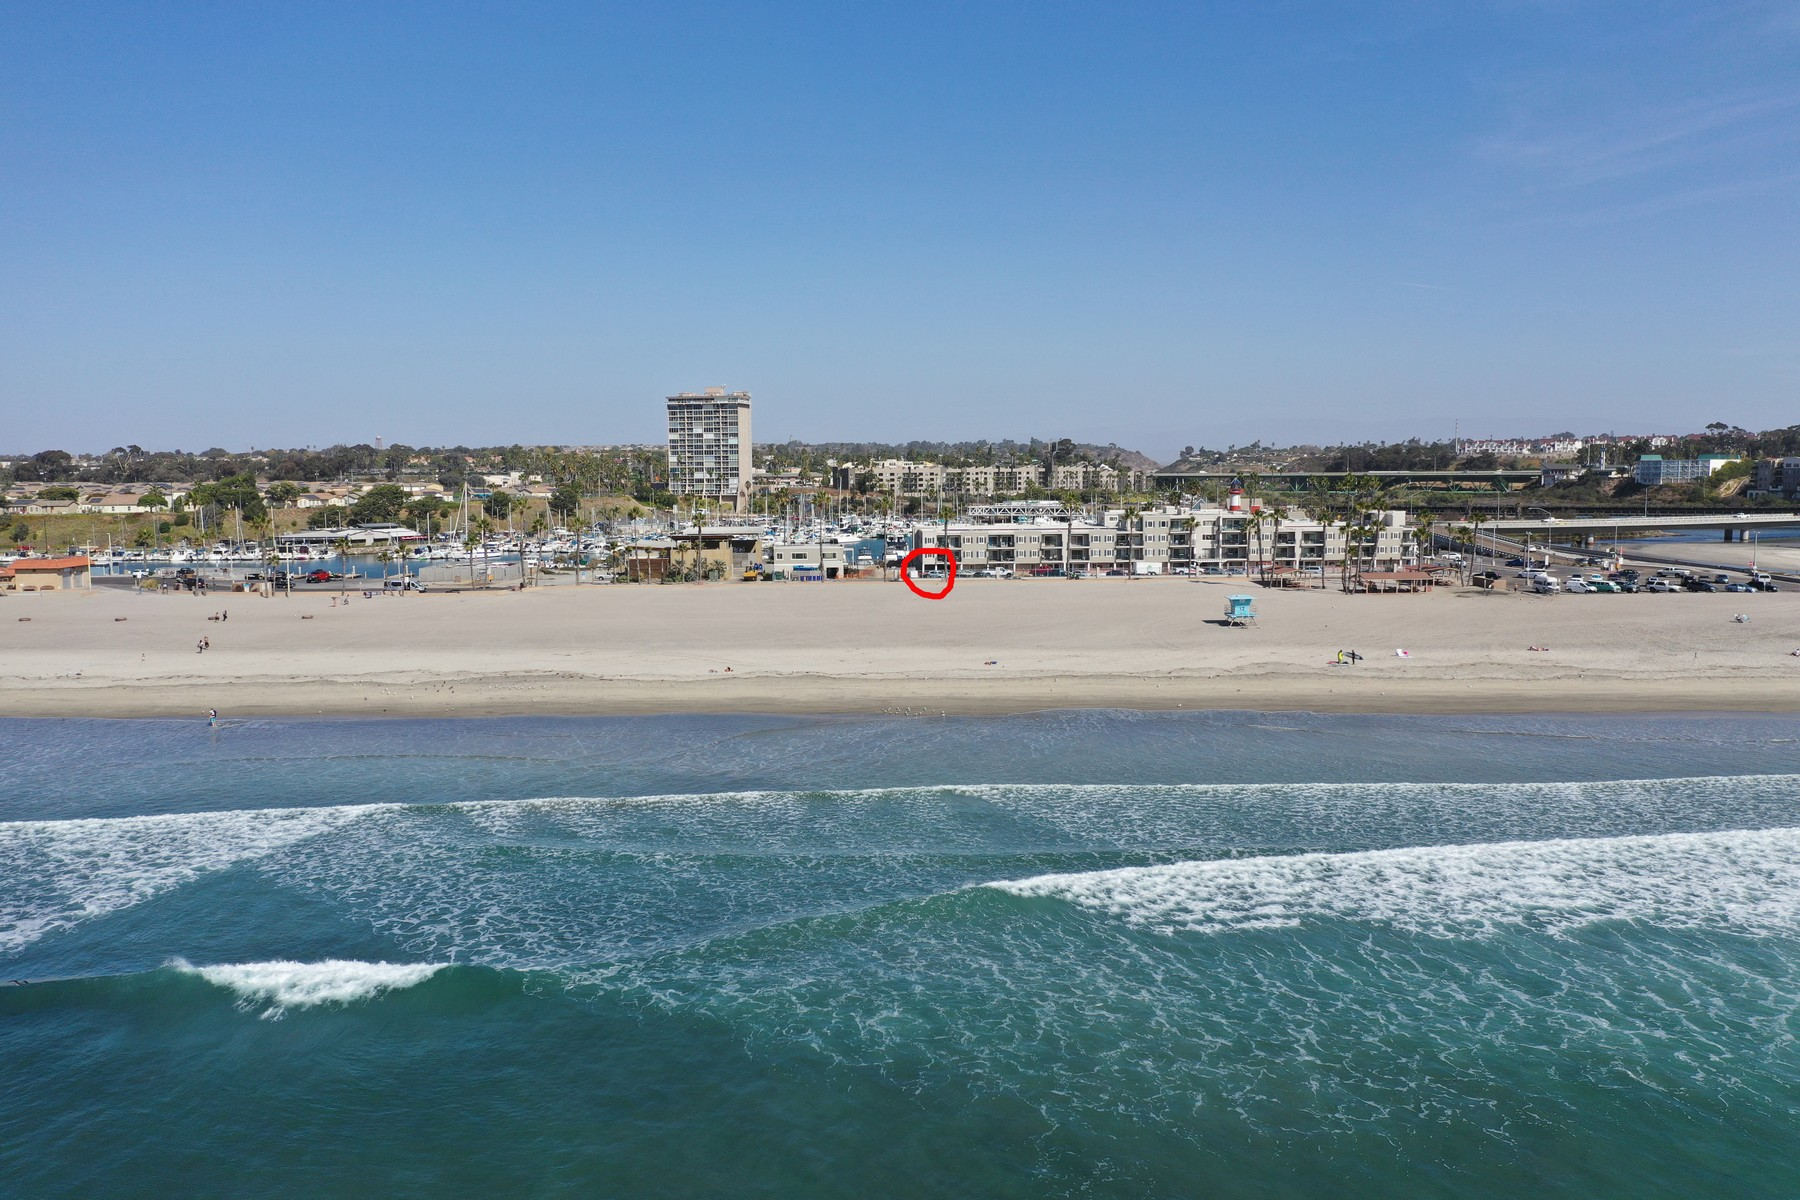 Condominiums for Sale at 1202 N. Pacifica #101A 1202 N. Pacific #101A Oceanside, California 92054 United States